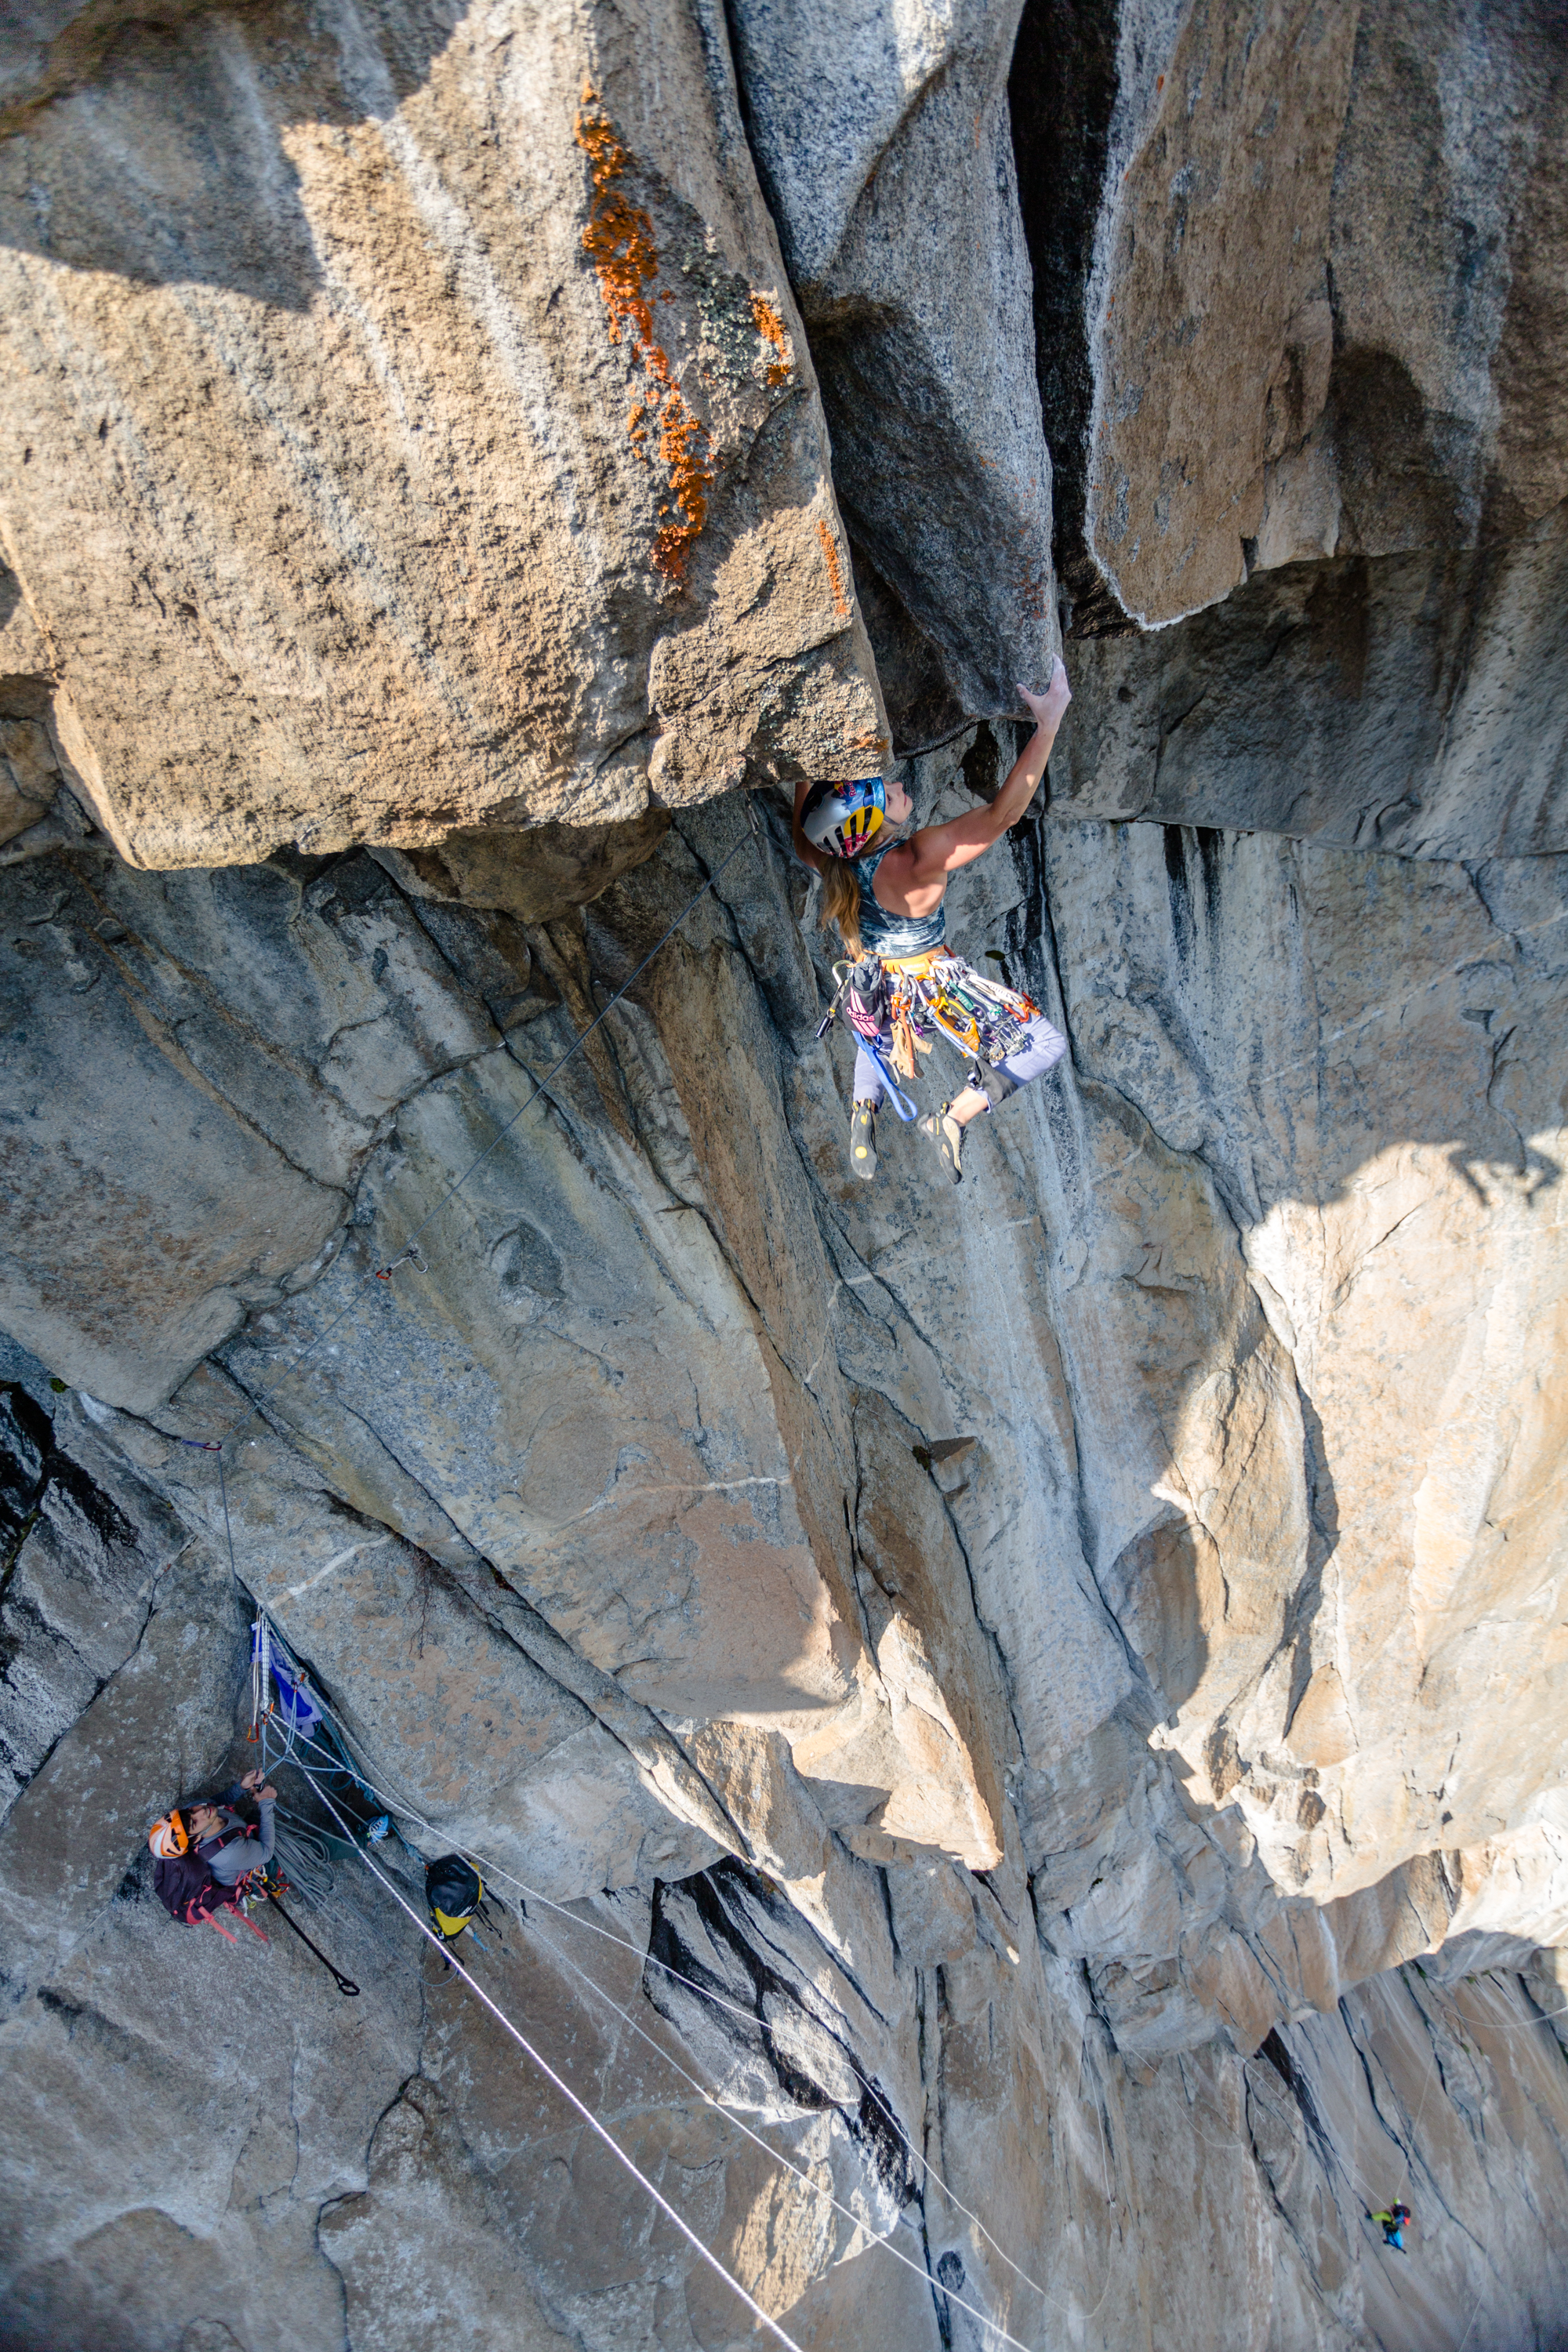 DiGiulian works the moves of the 5.13 roof crux on the Misty Wall before her free ascent with Cardwell, who is at the belay. [Photo] John Evans